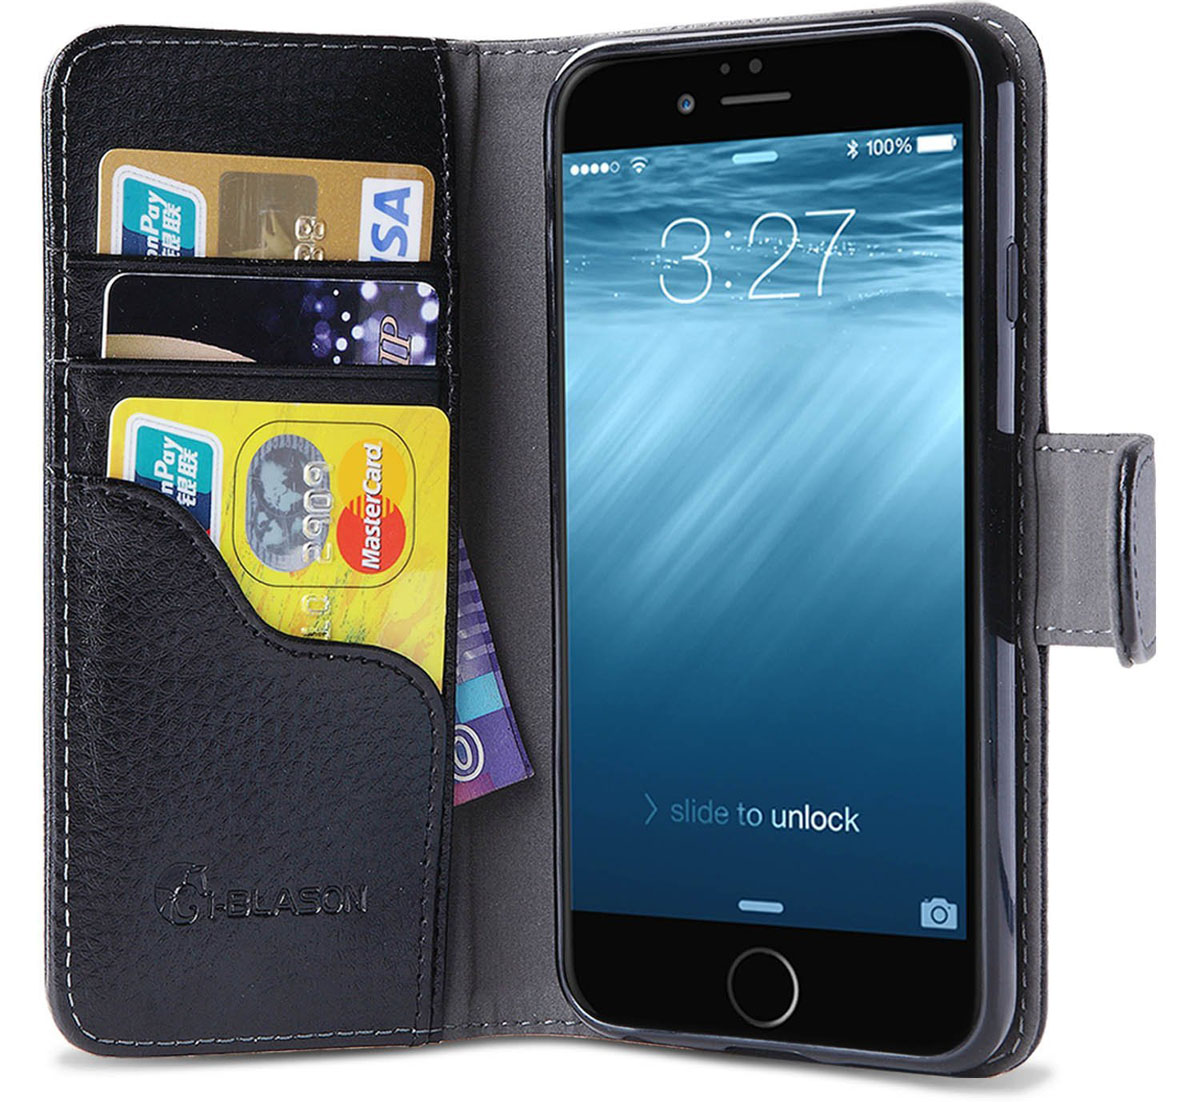 iPhone 6 Plus Wallet Case with Kickstand